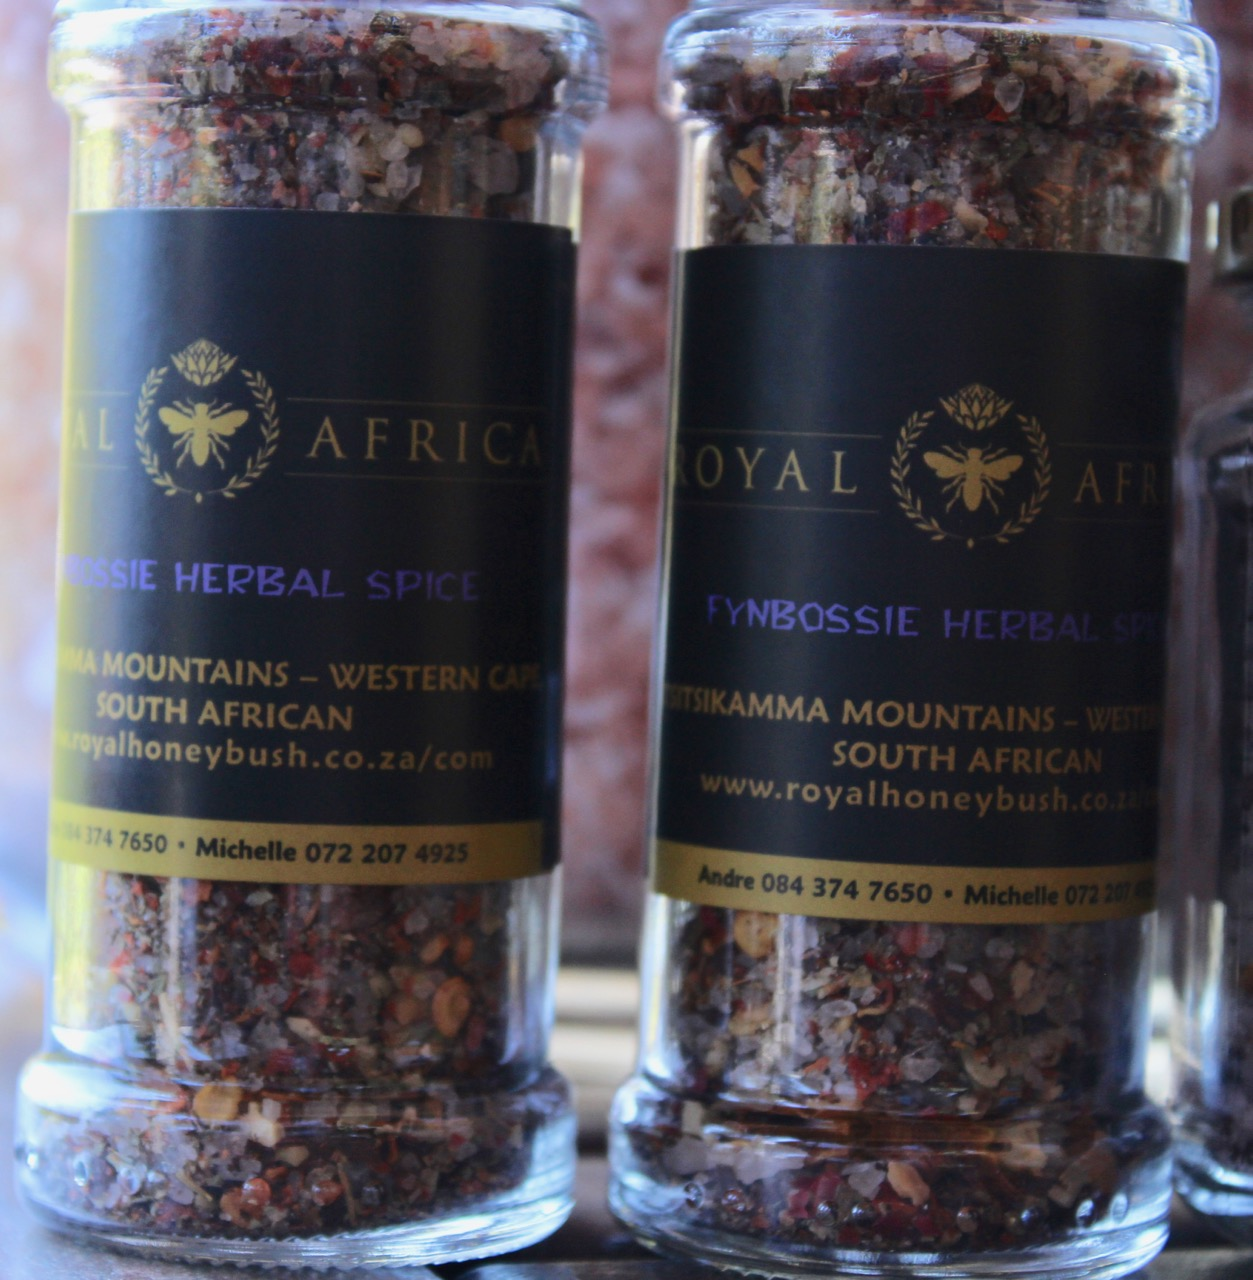 Our famous herbal/ braai spice!